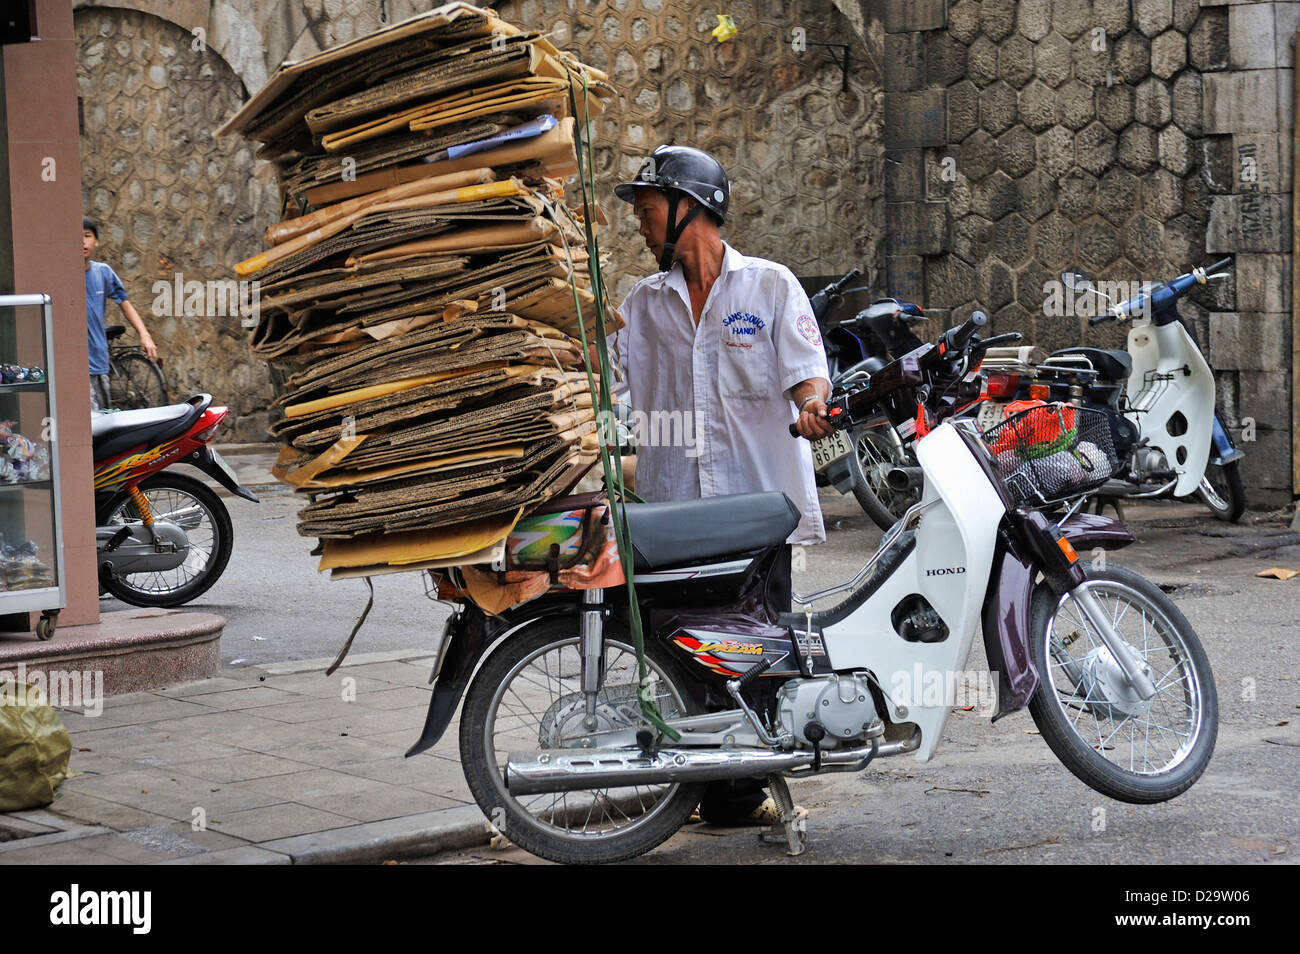 Man carrying cardboard on the back of his scooter, Hanoi, Vietnam - Stock Image